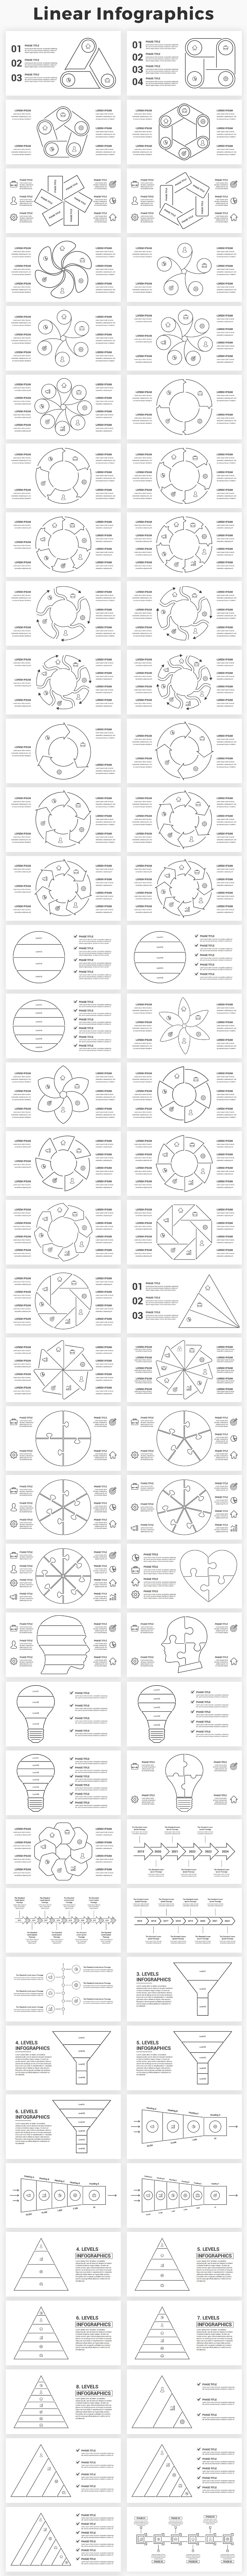 Linear Infographics PowerPoint Template Diagrams - 1